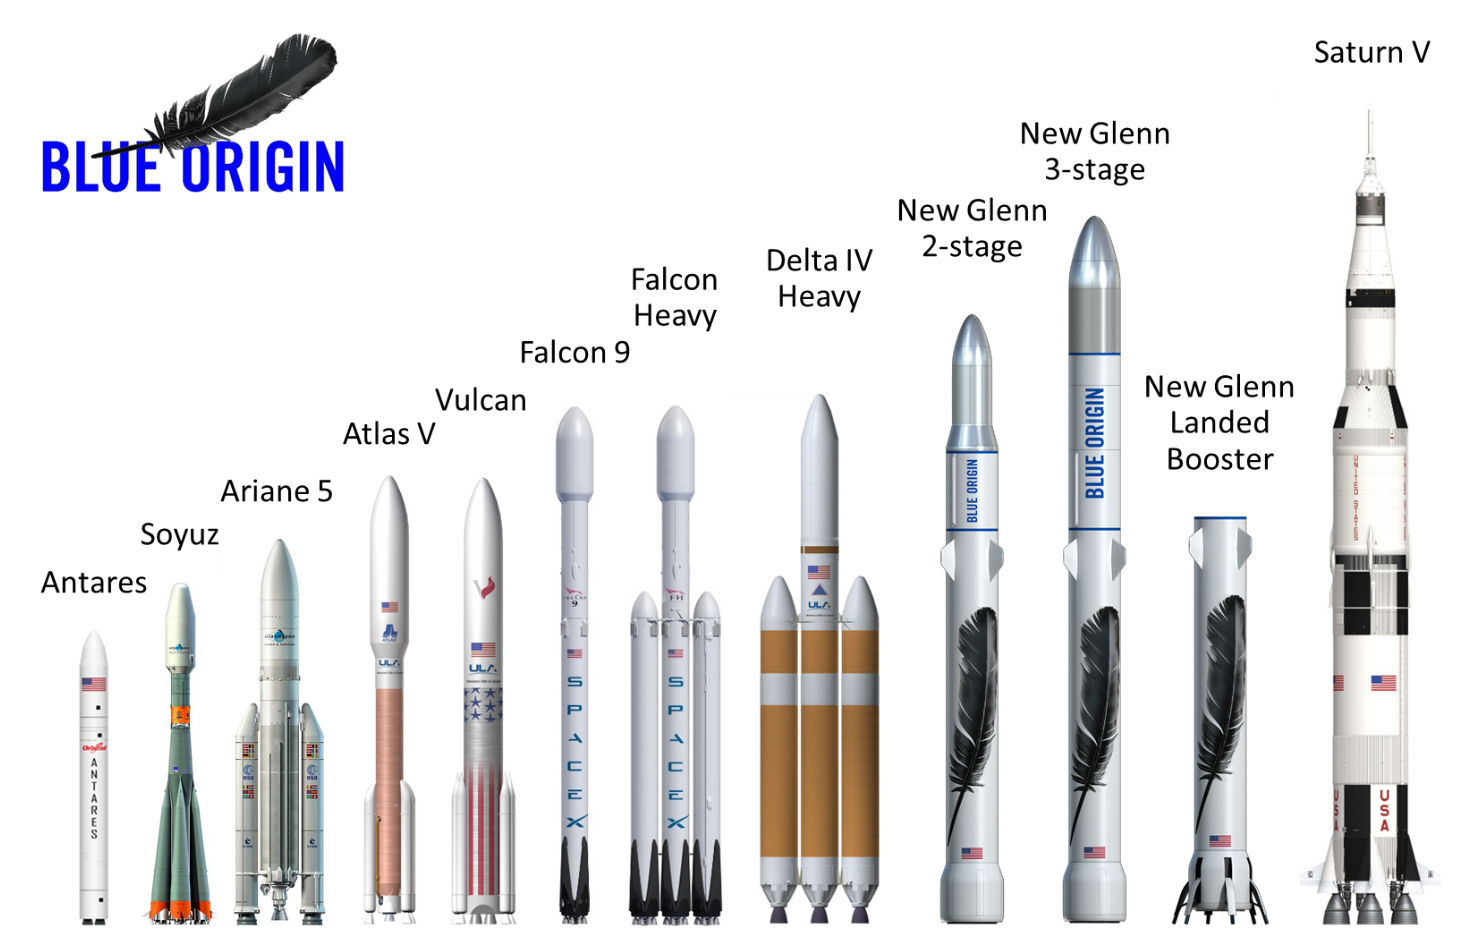 Blue Origin reveals rival to SpaceX Falcon rockets